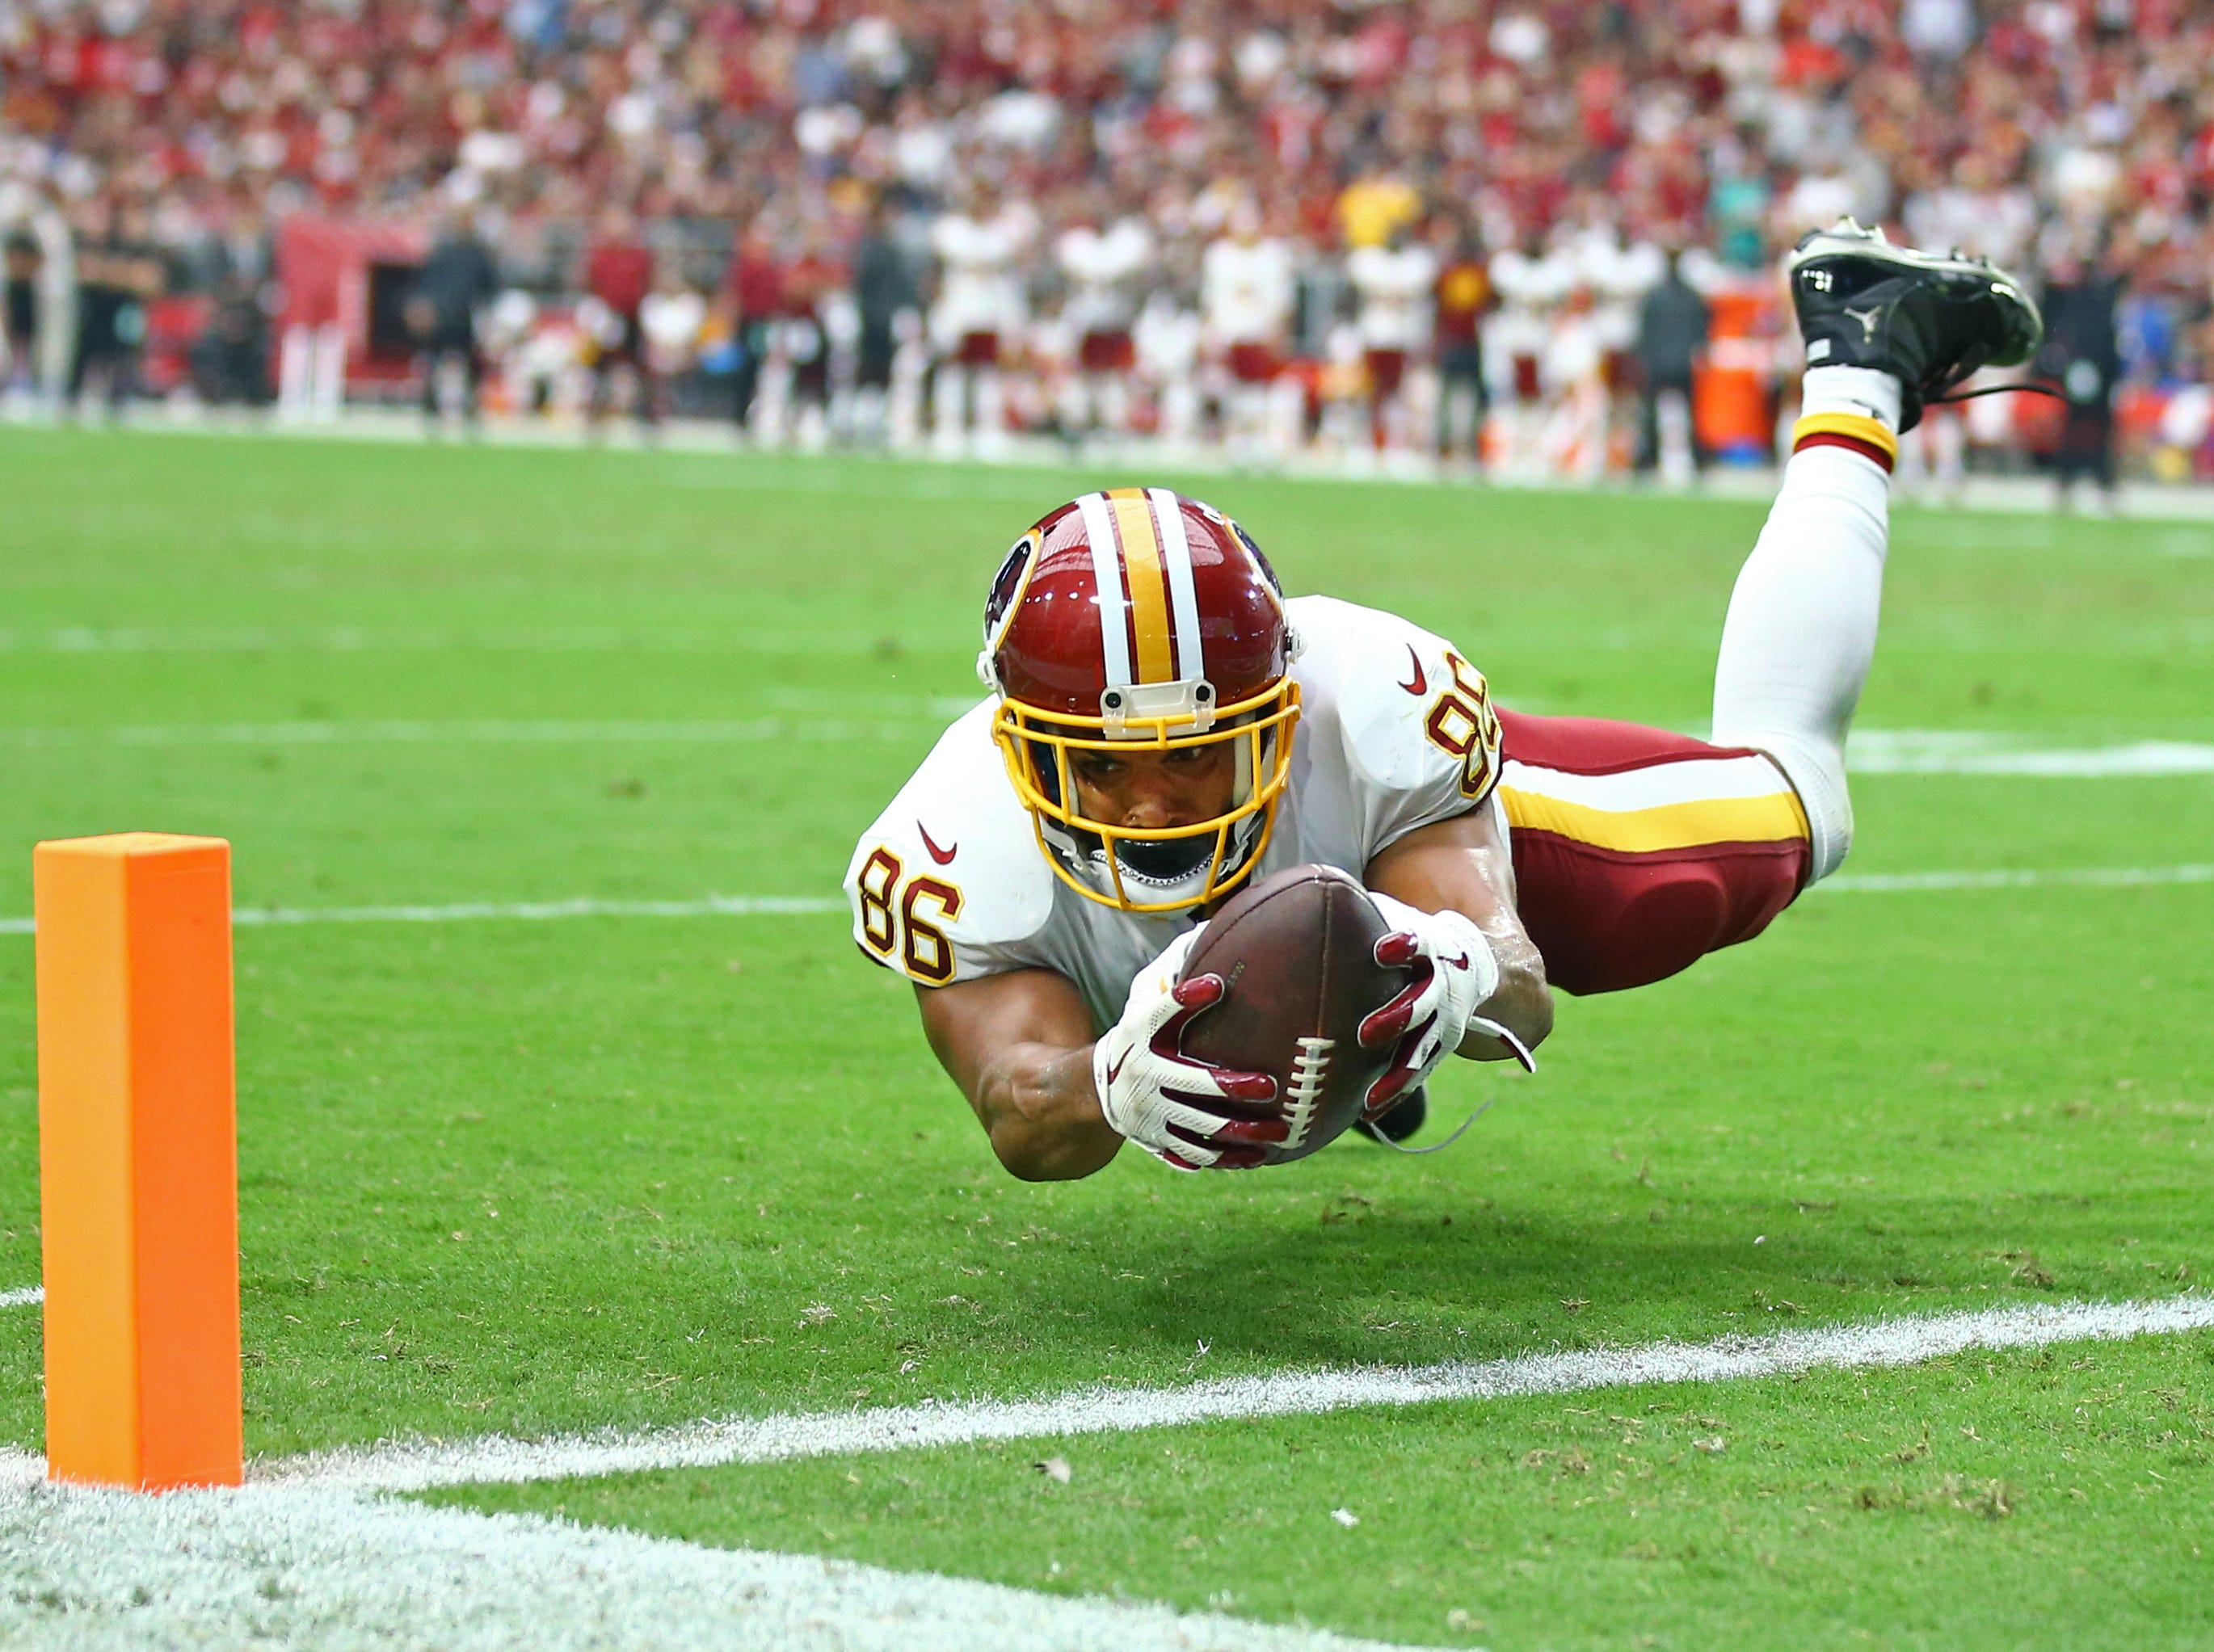 Sept. 9: Washington Redskins tight end Jordan Reed (86) catches a pass and dives across the goal line for a touchdown against the Arizona Cardinals in the second quarter at University of Phoenix Stadium.